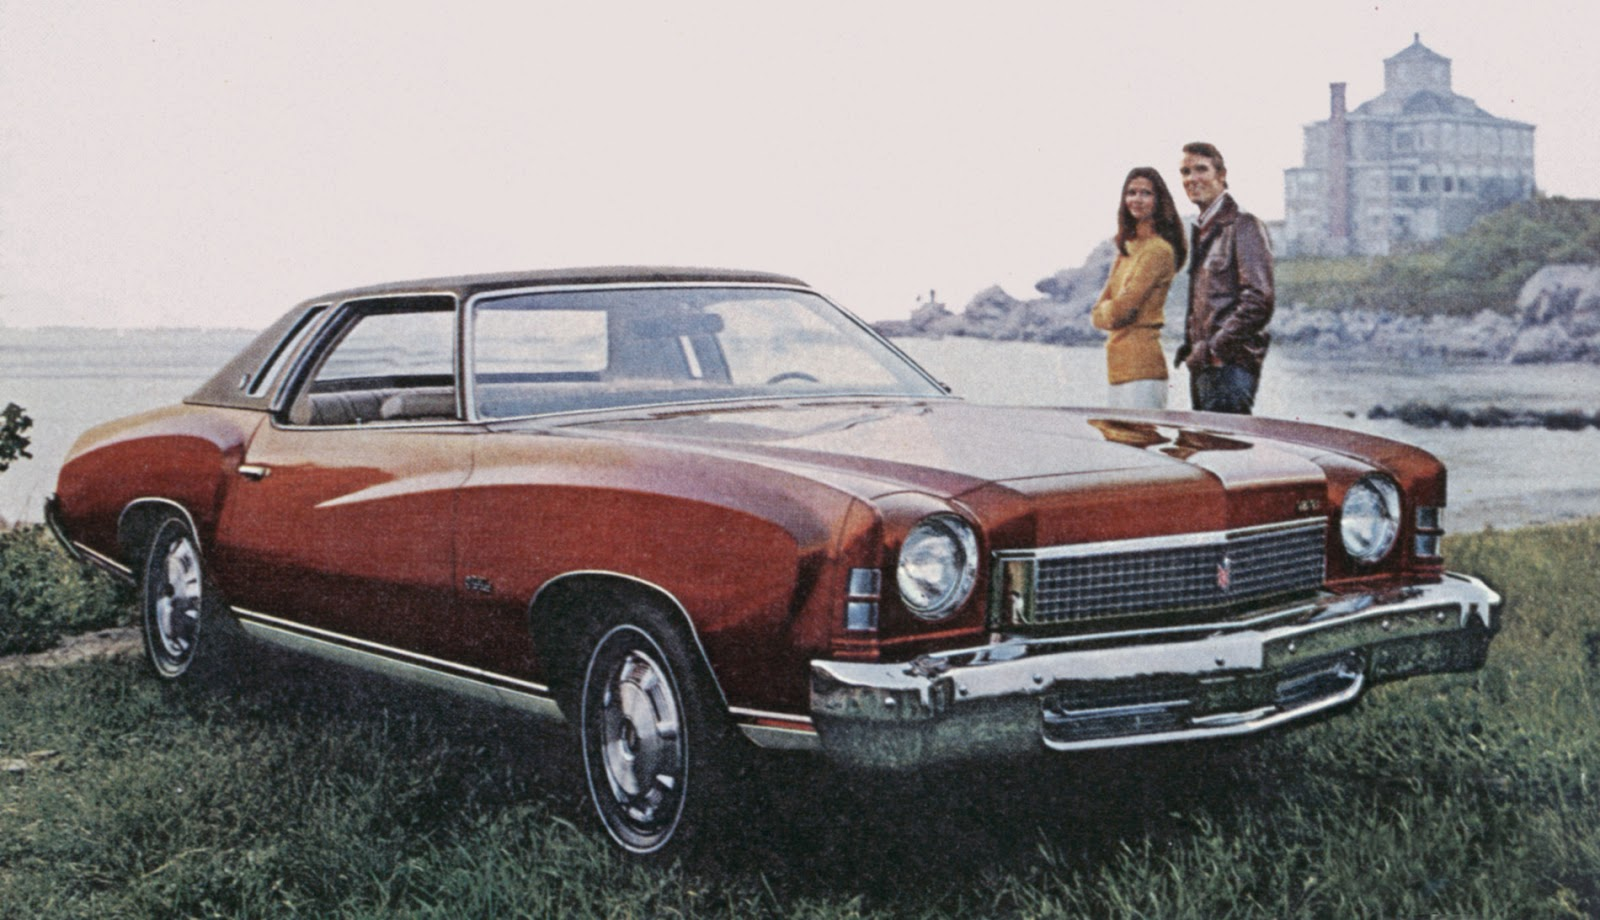 in 1973 monte carlo gained its own identity with sculpted fenders and elaborate grilles  [ 1600 x 920 Pixel ]